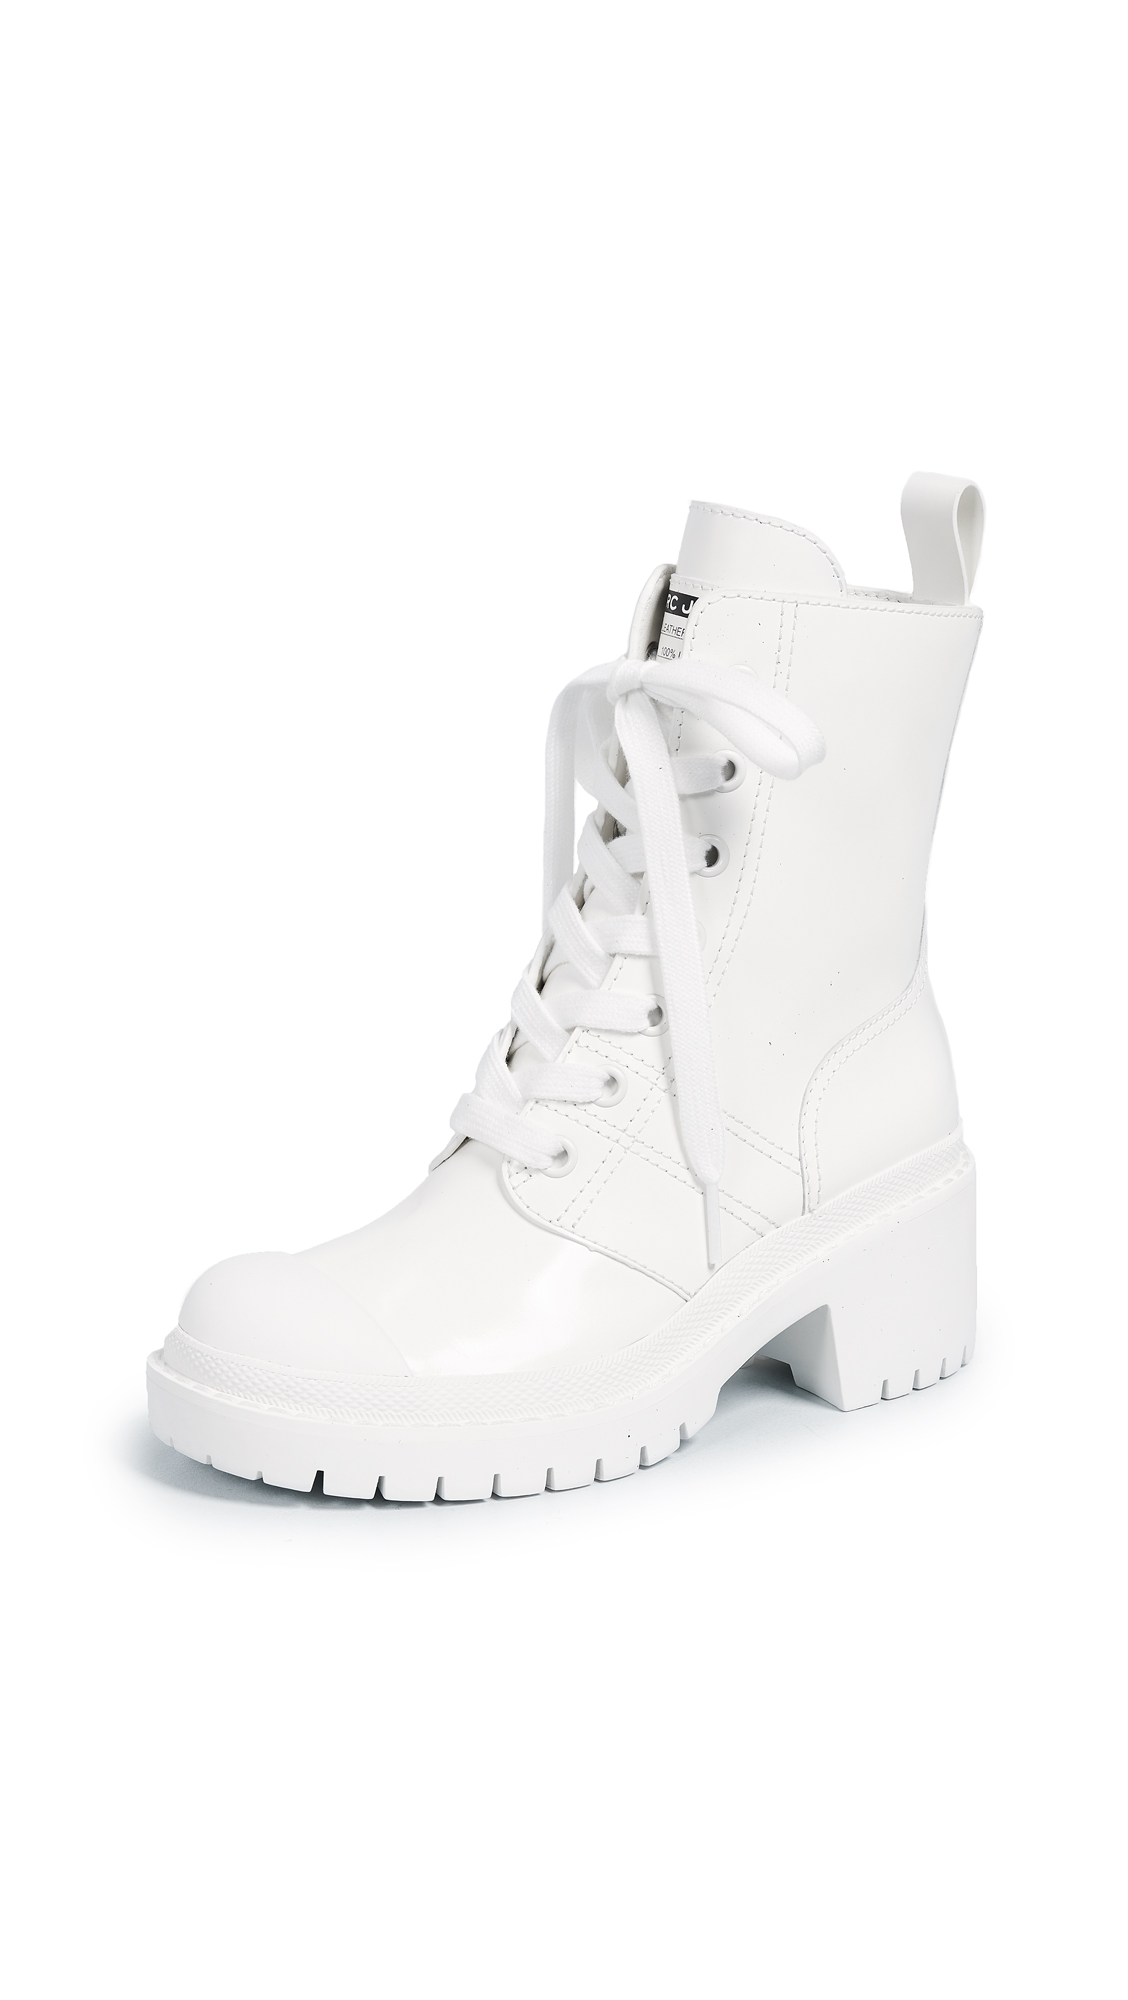 Marc Jacobs Bristol Laced Up Boots - White